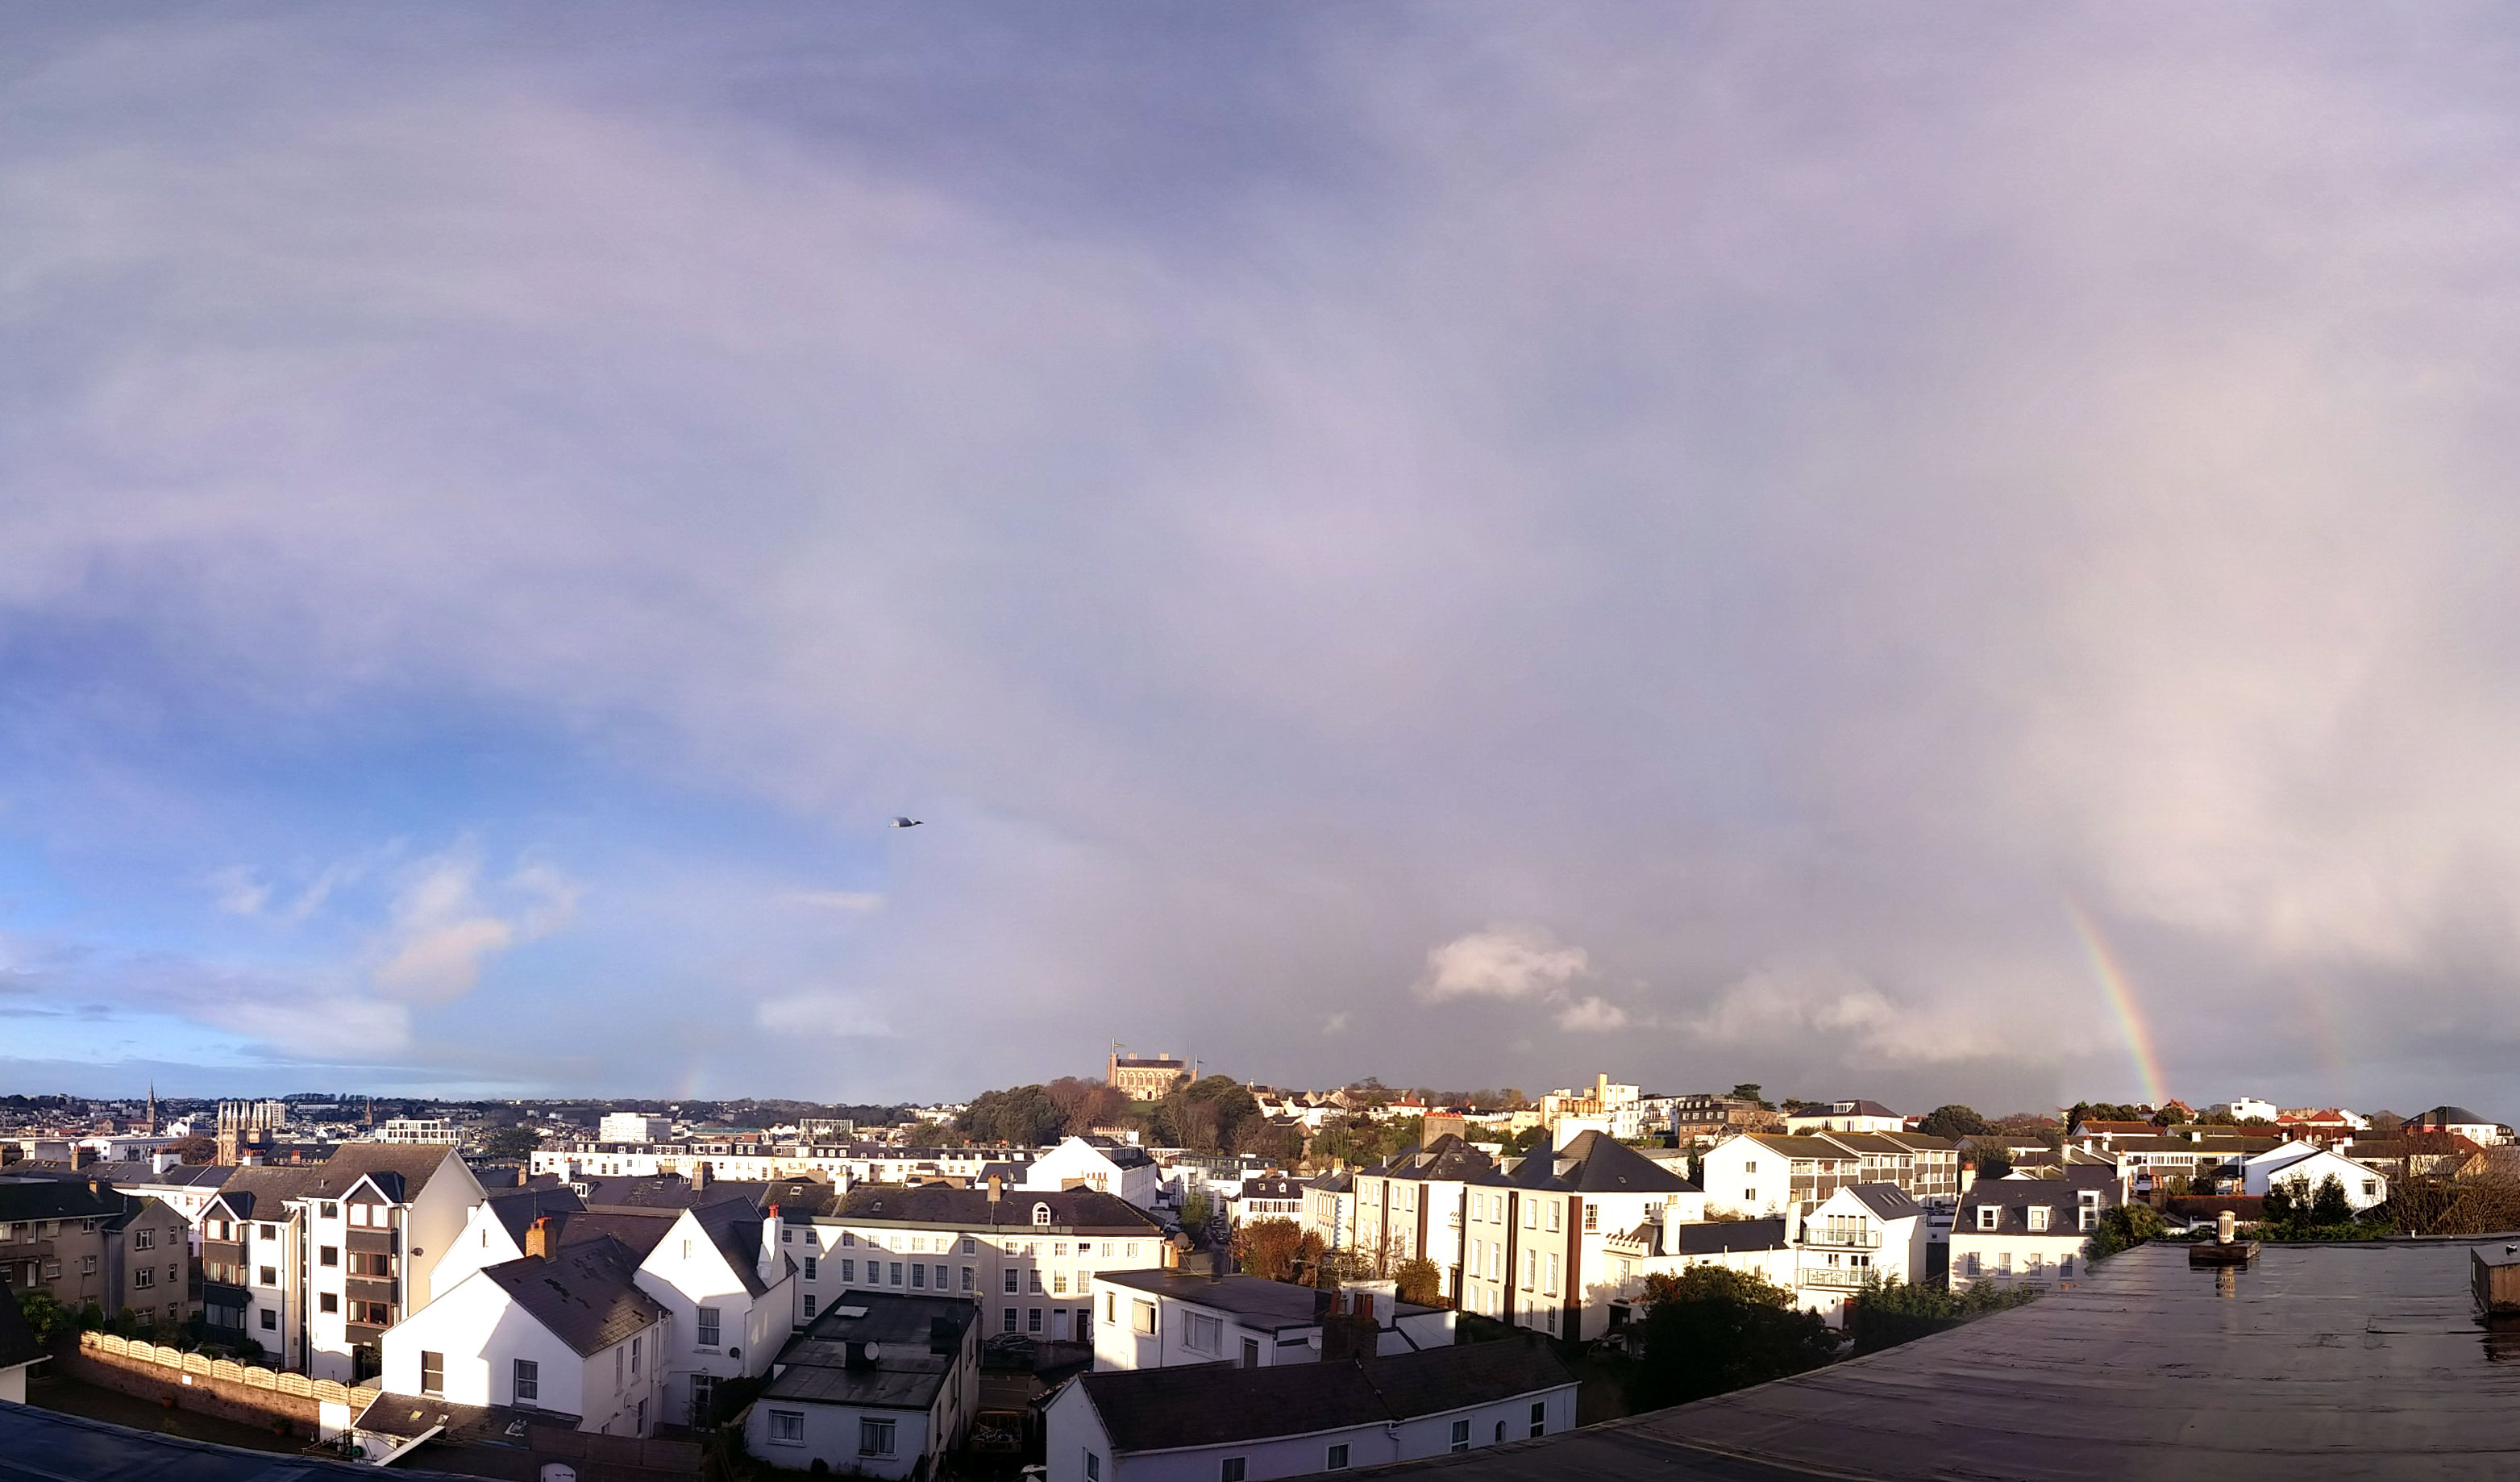 View over St. Helier from the Norfolk roof.